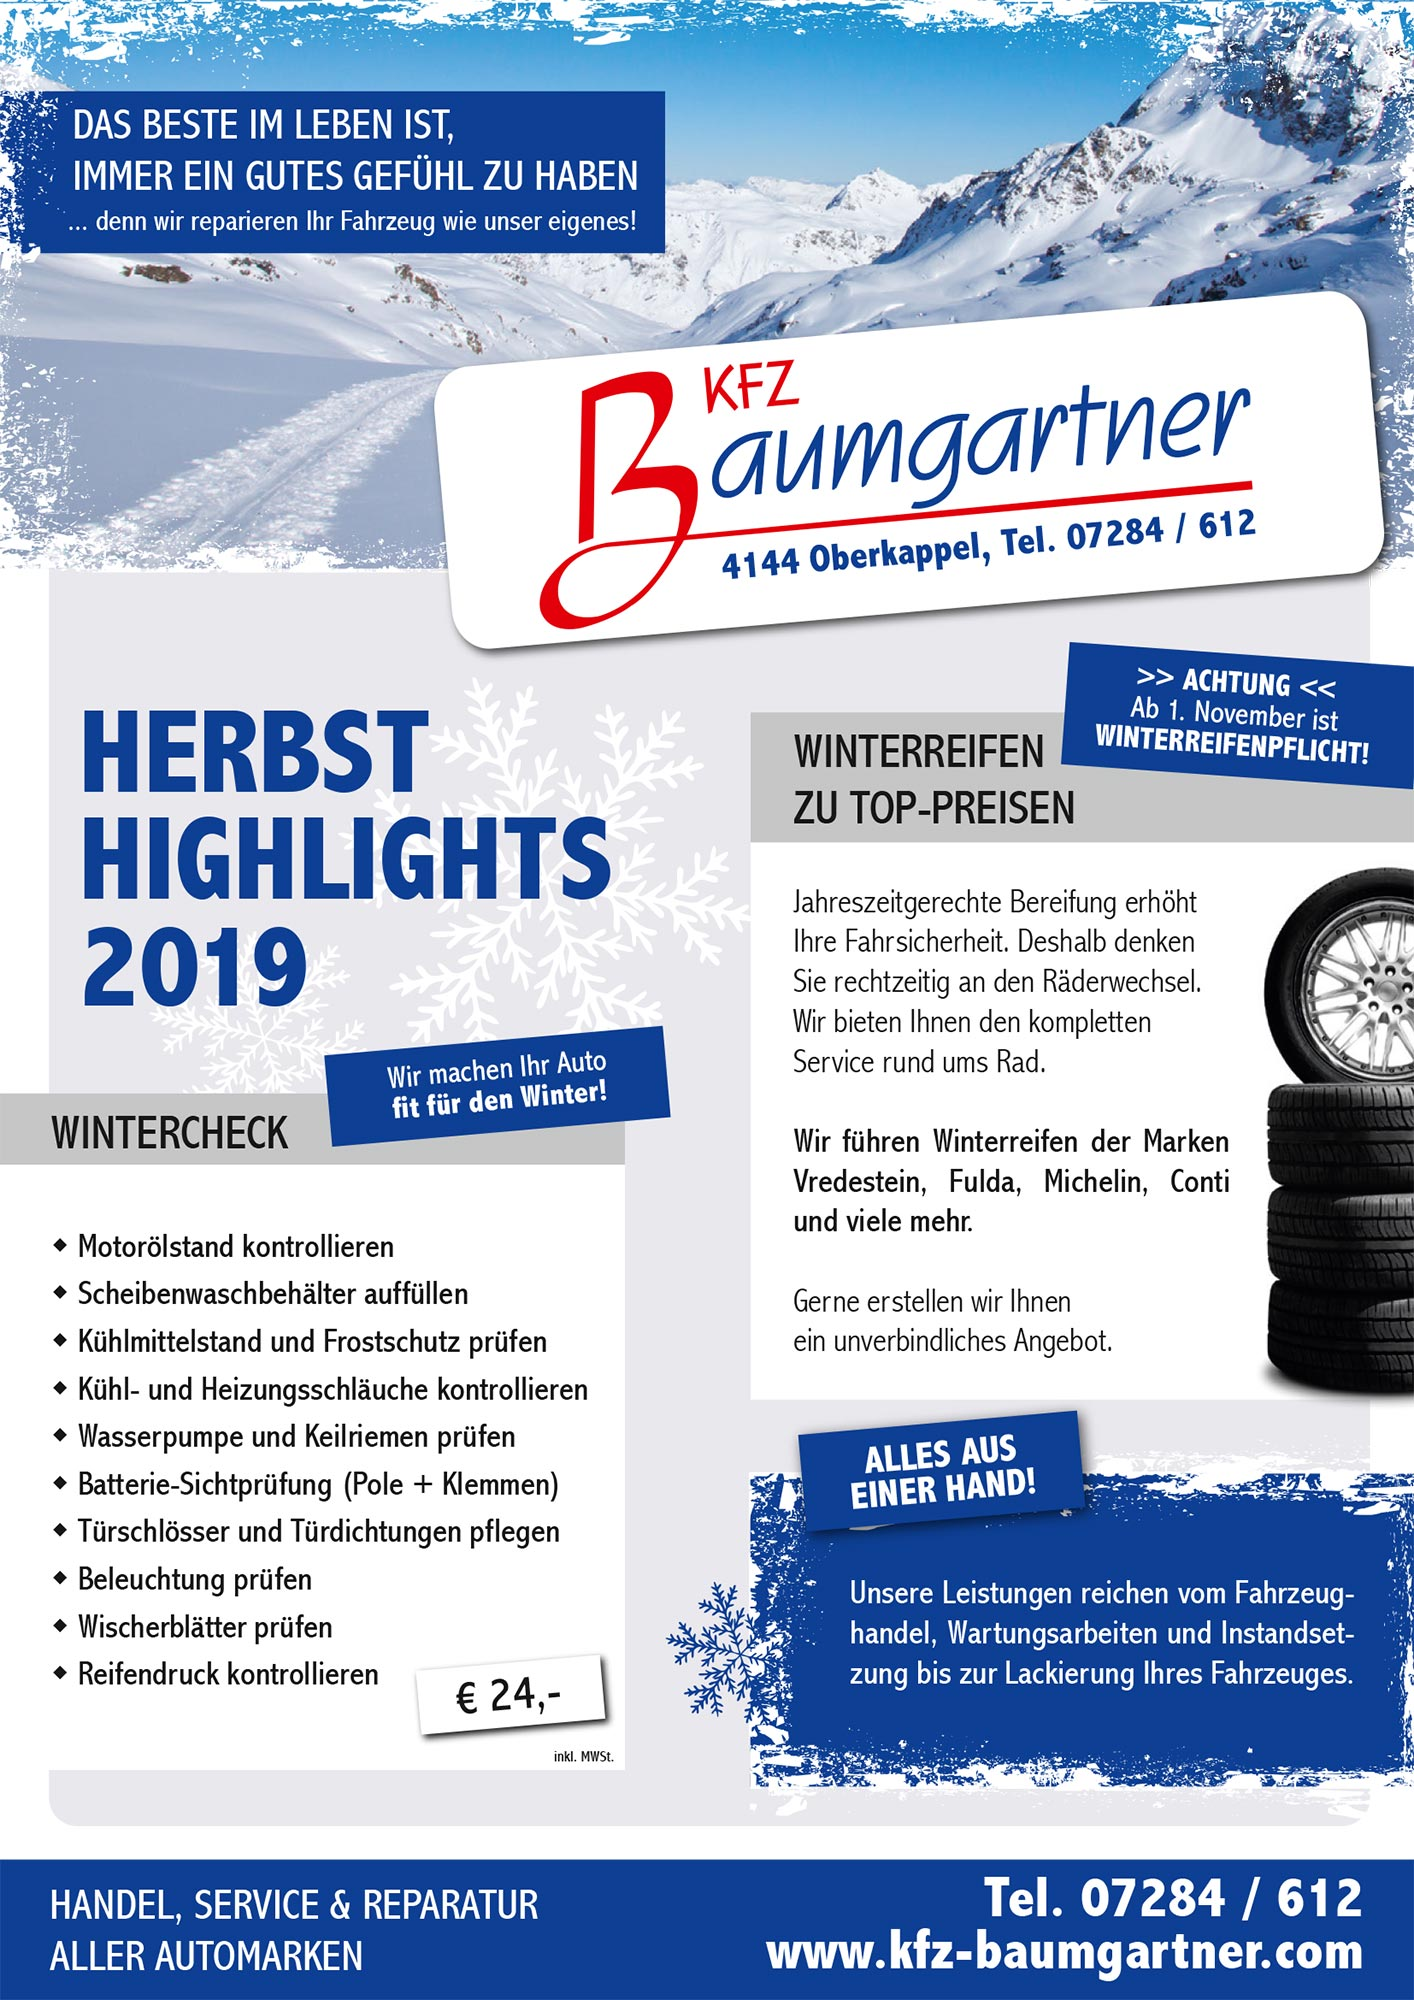 KFZ-Baumgartner Herbsthighlights 2019